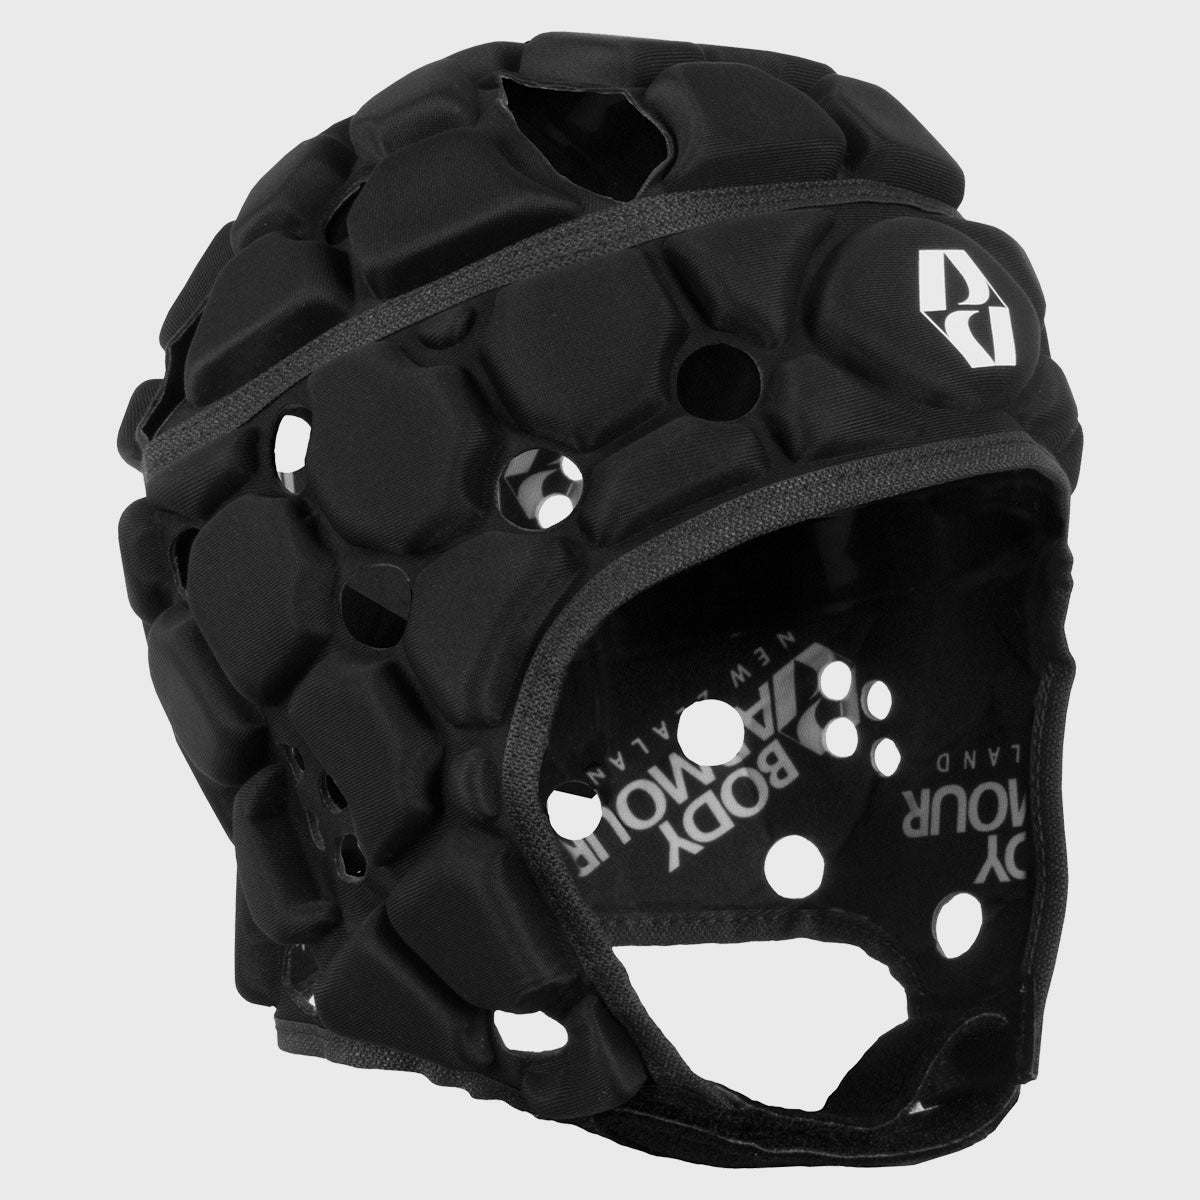 Ventilator Rugby Headguard Black